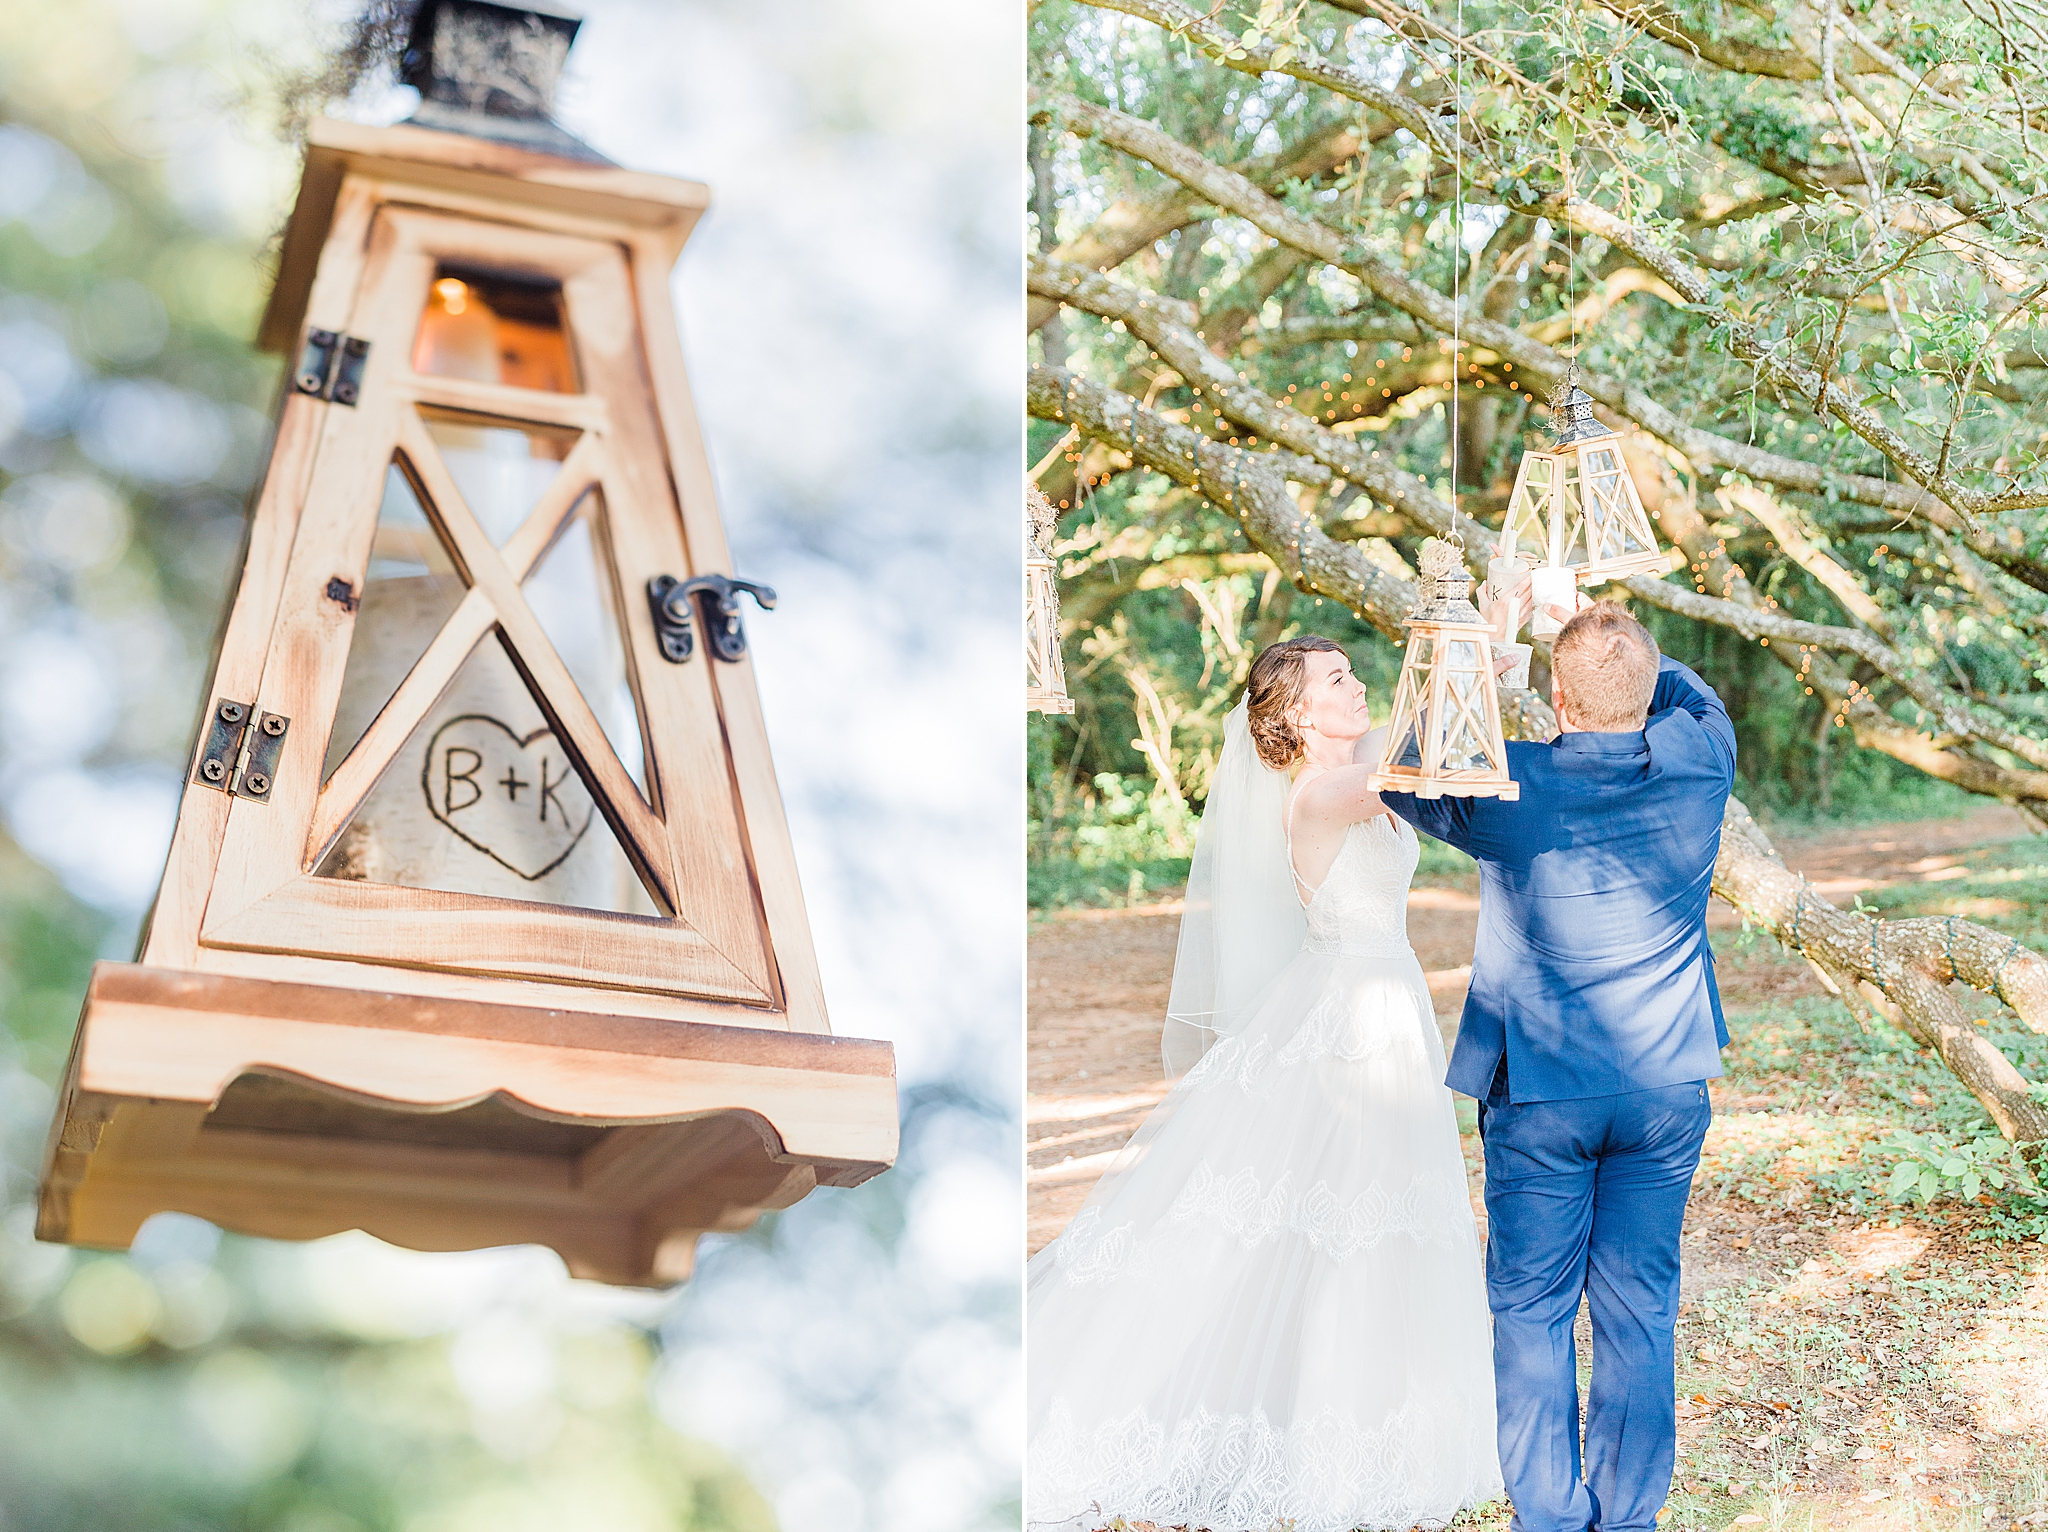 bride and groom place wooden lantern in tree during ceremony